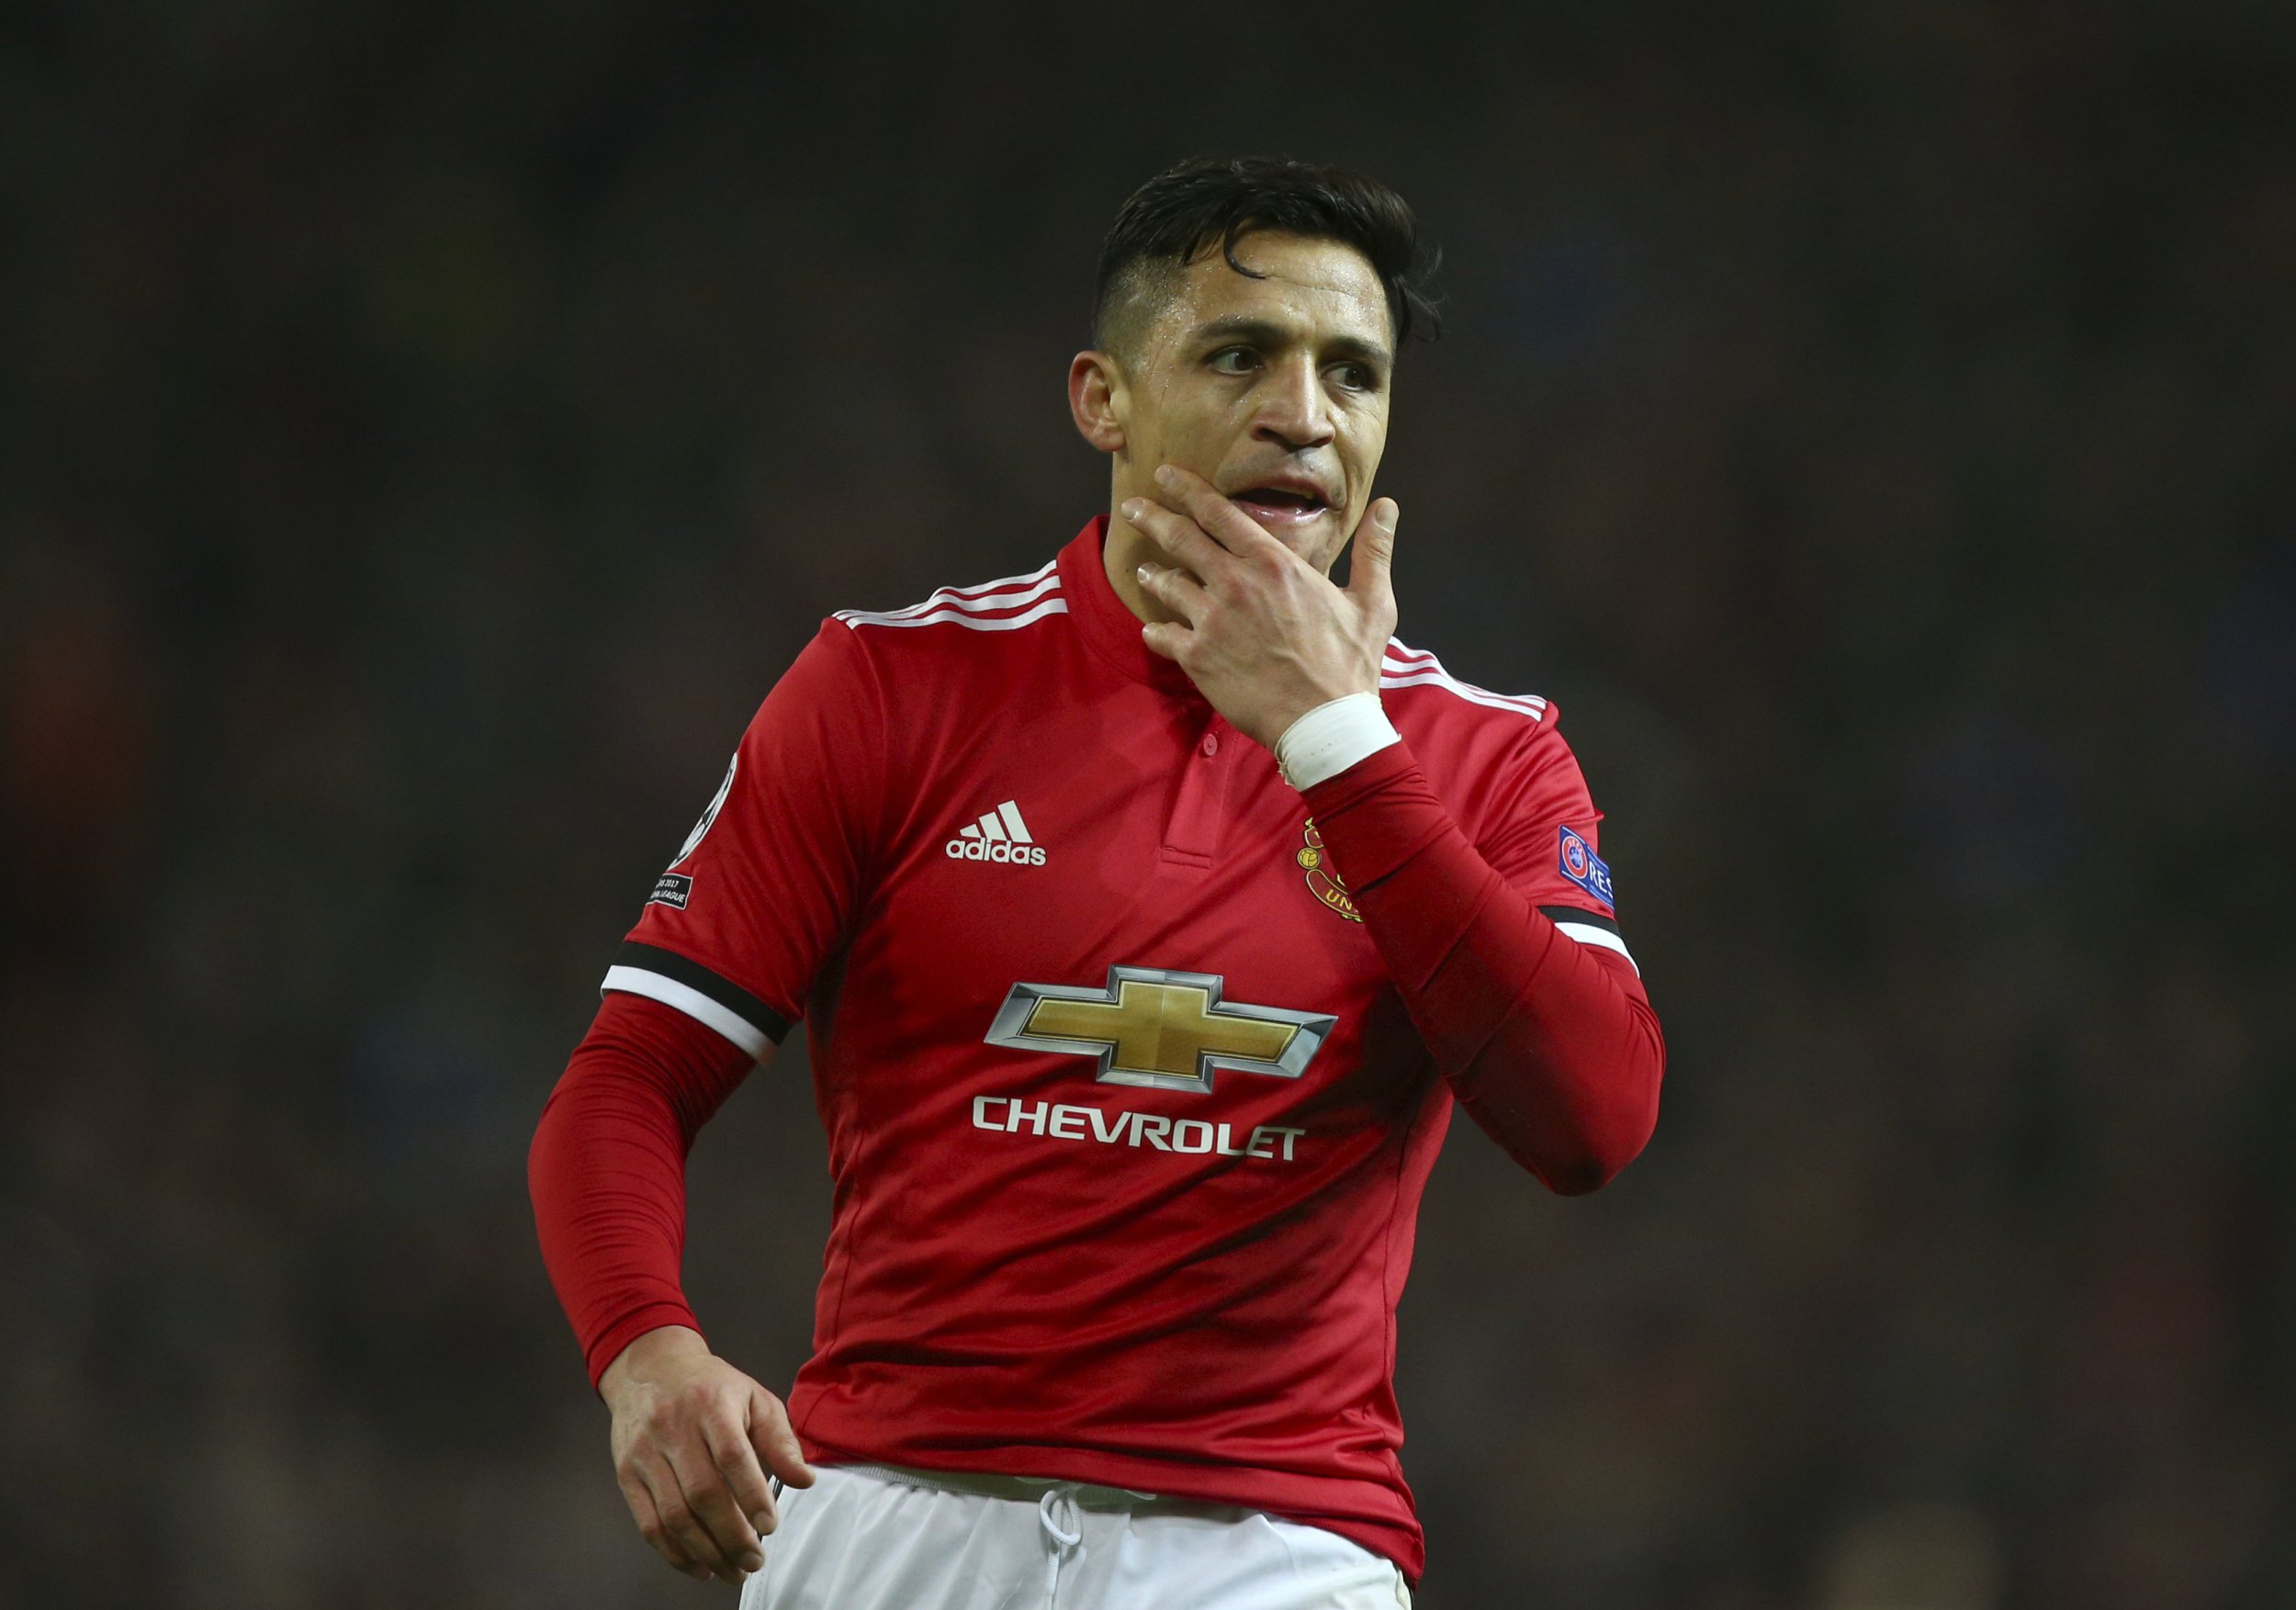 Manchester United's Alexis Sanchez reacts after watching his team miss a chance to score during the Champions League round of 16 second leg soccer match between Manchester United and Sevilla, at Old Trafford in Manchester, England, Tuesday, March 13, 2018. (AP Photo/Dave Thompson)